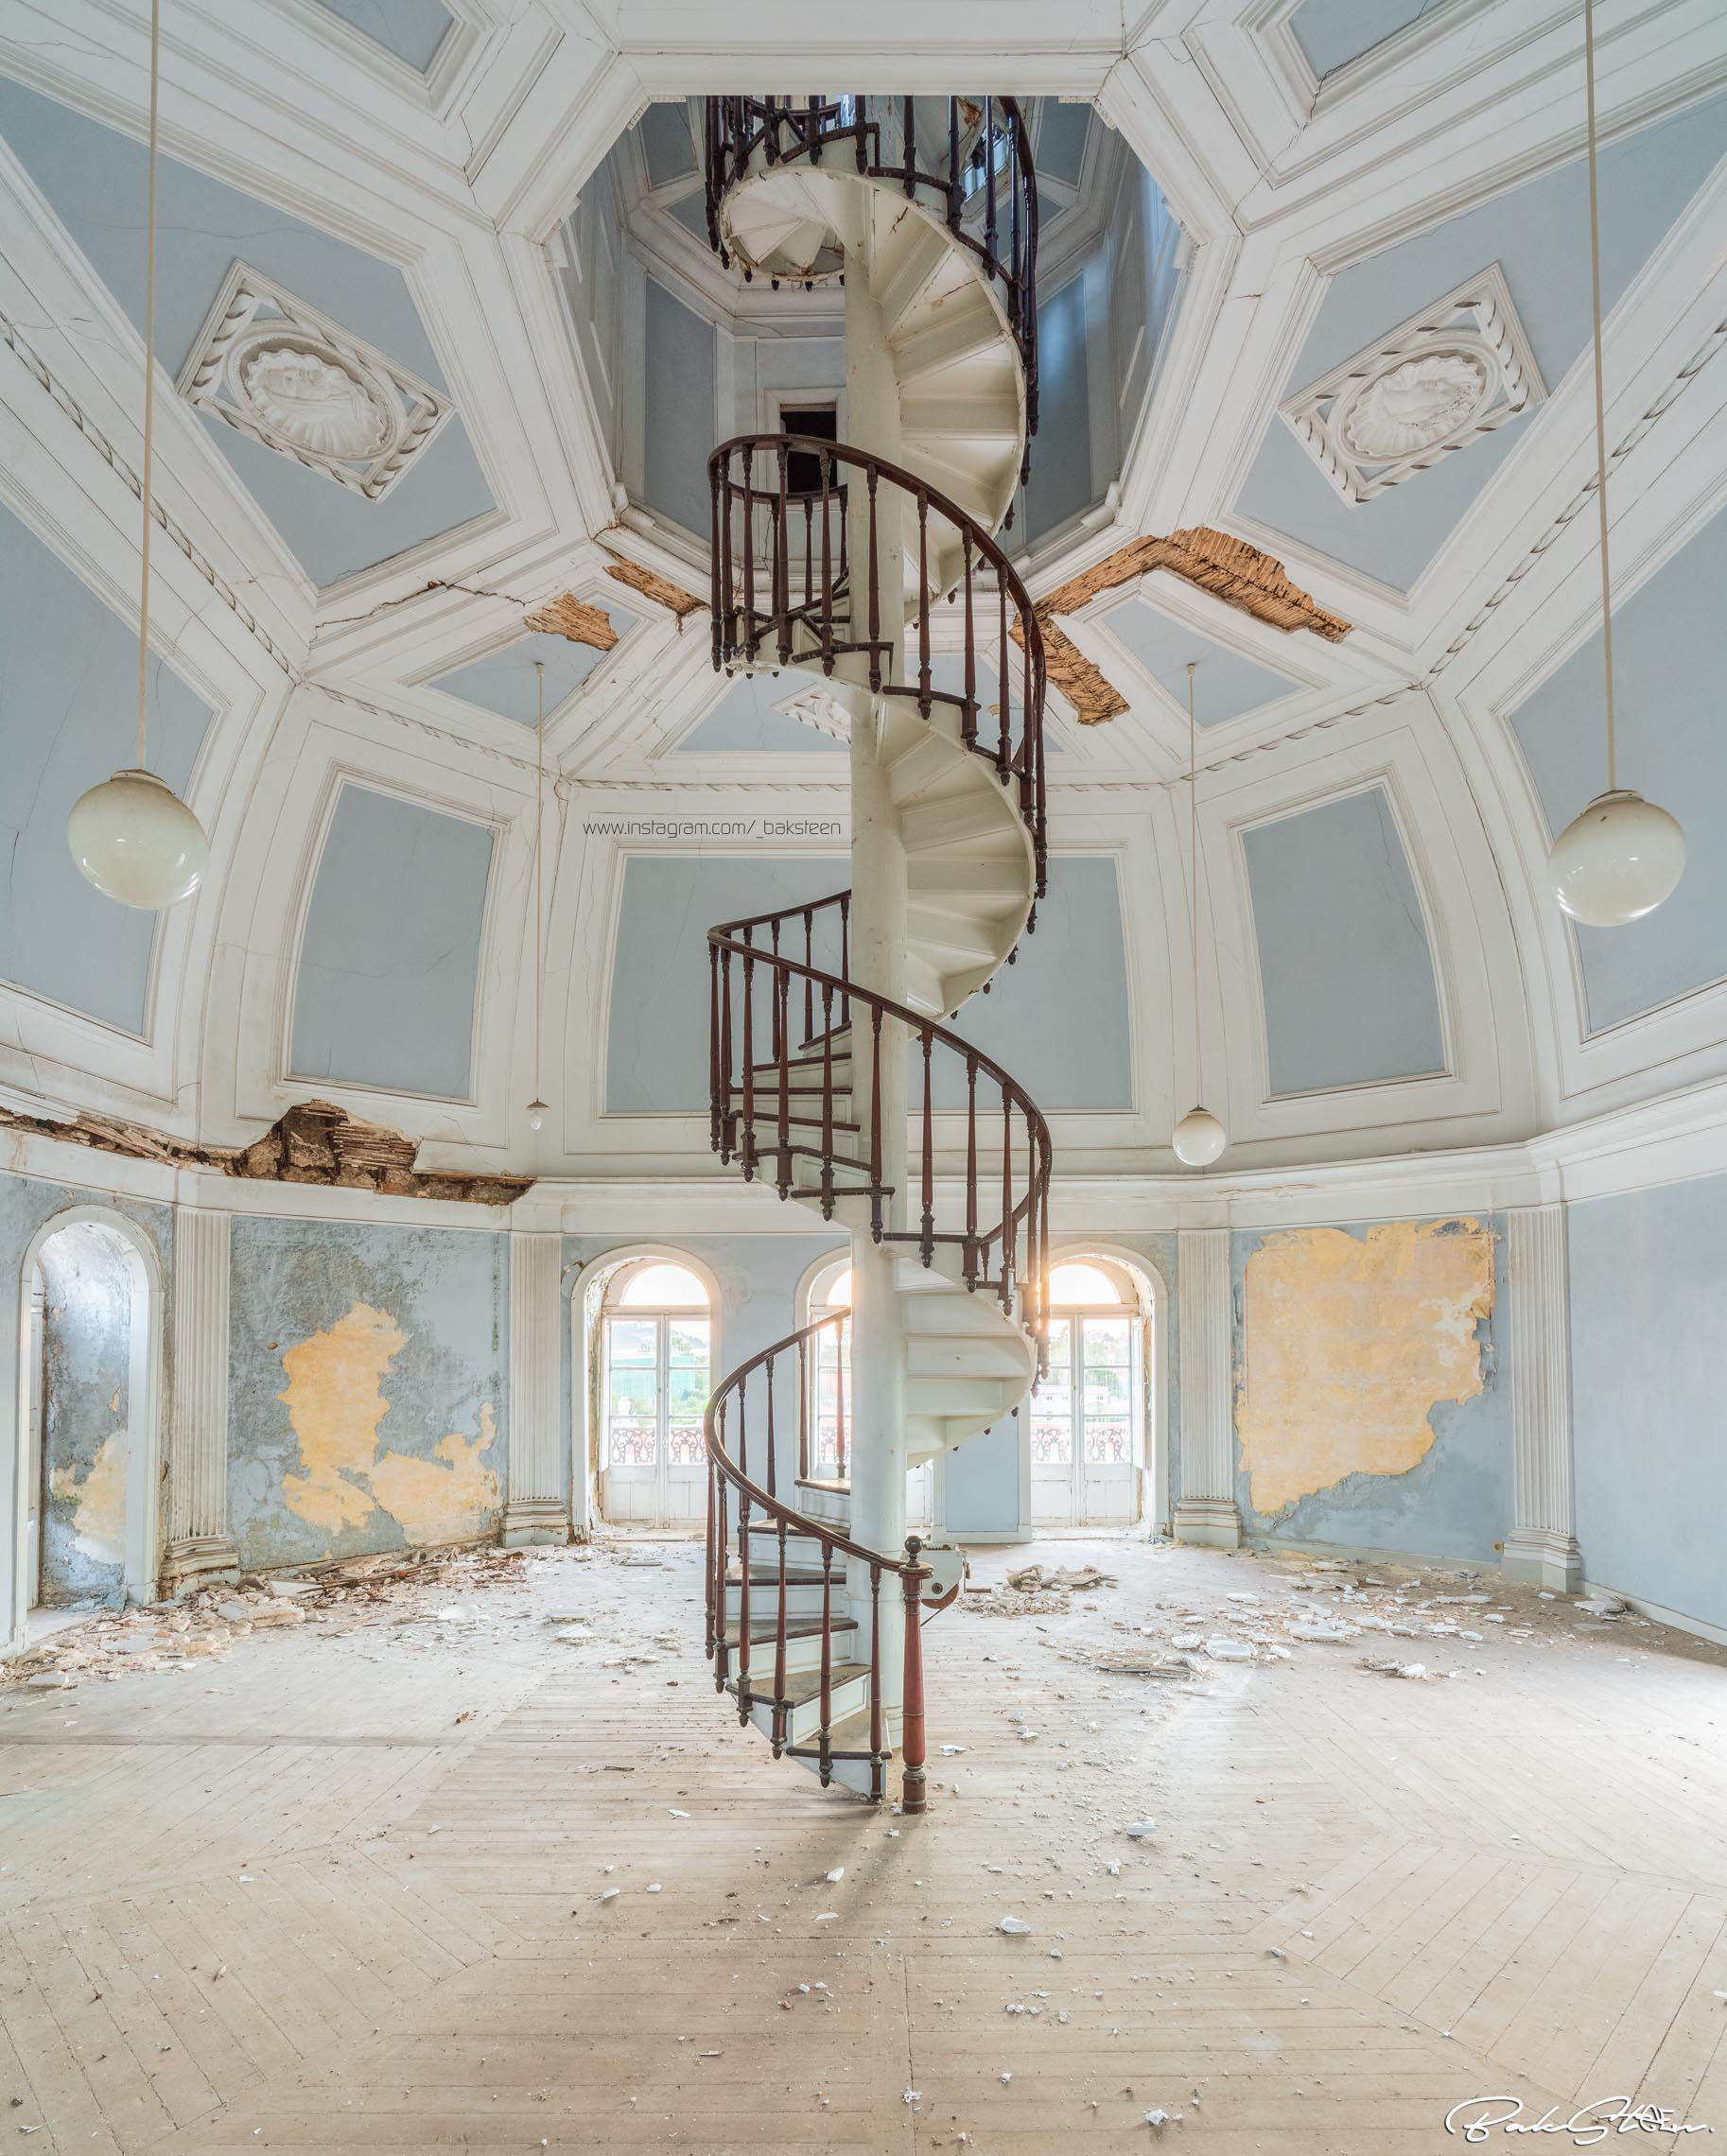 Spiral staircase to the attic of an abandoned school